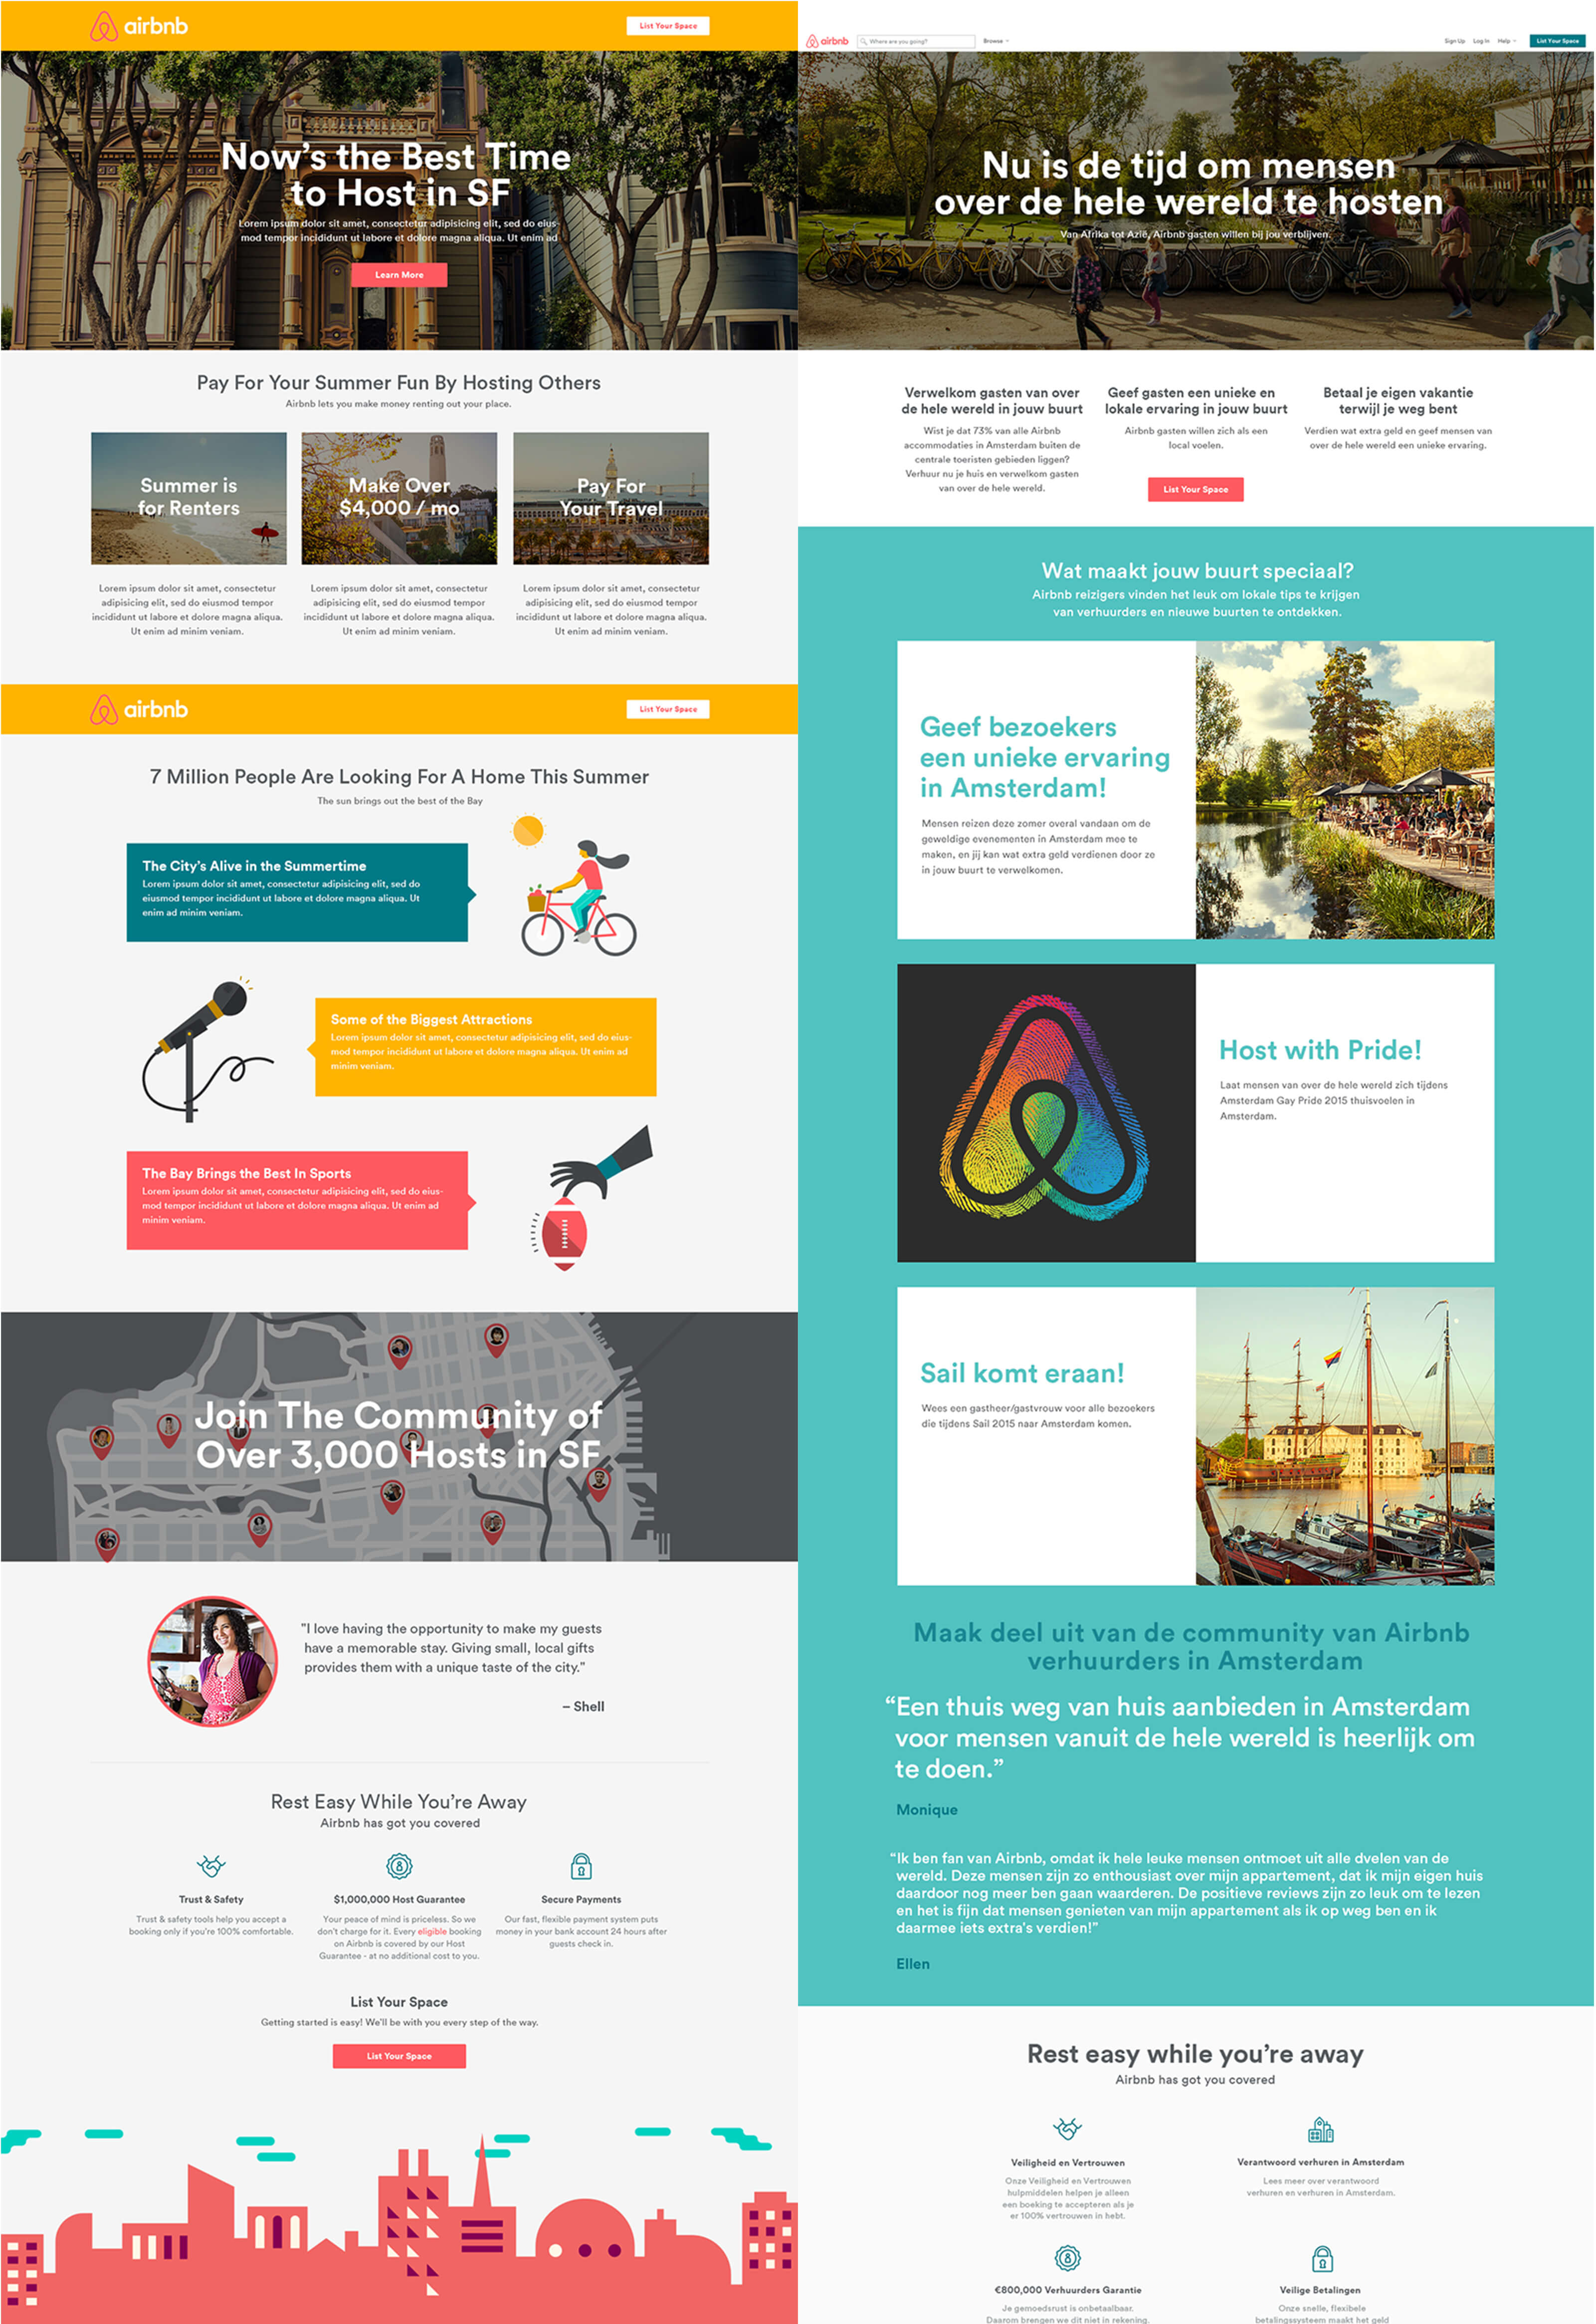 Airbnb-2Up-LargePages@2x